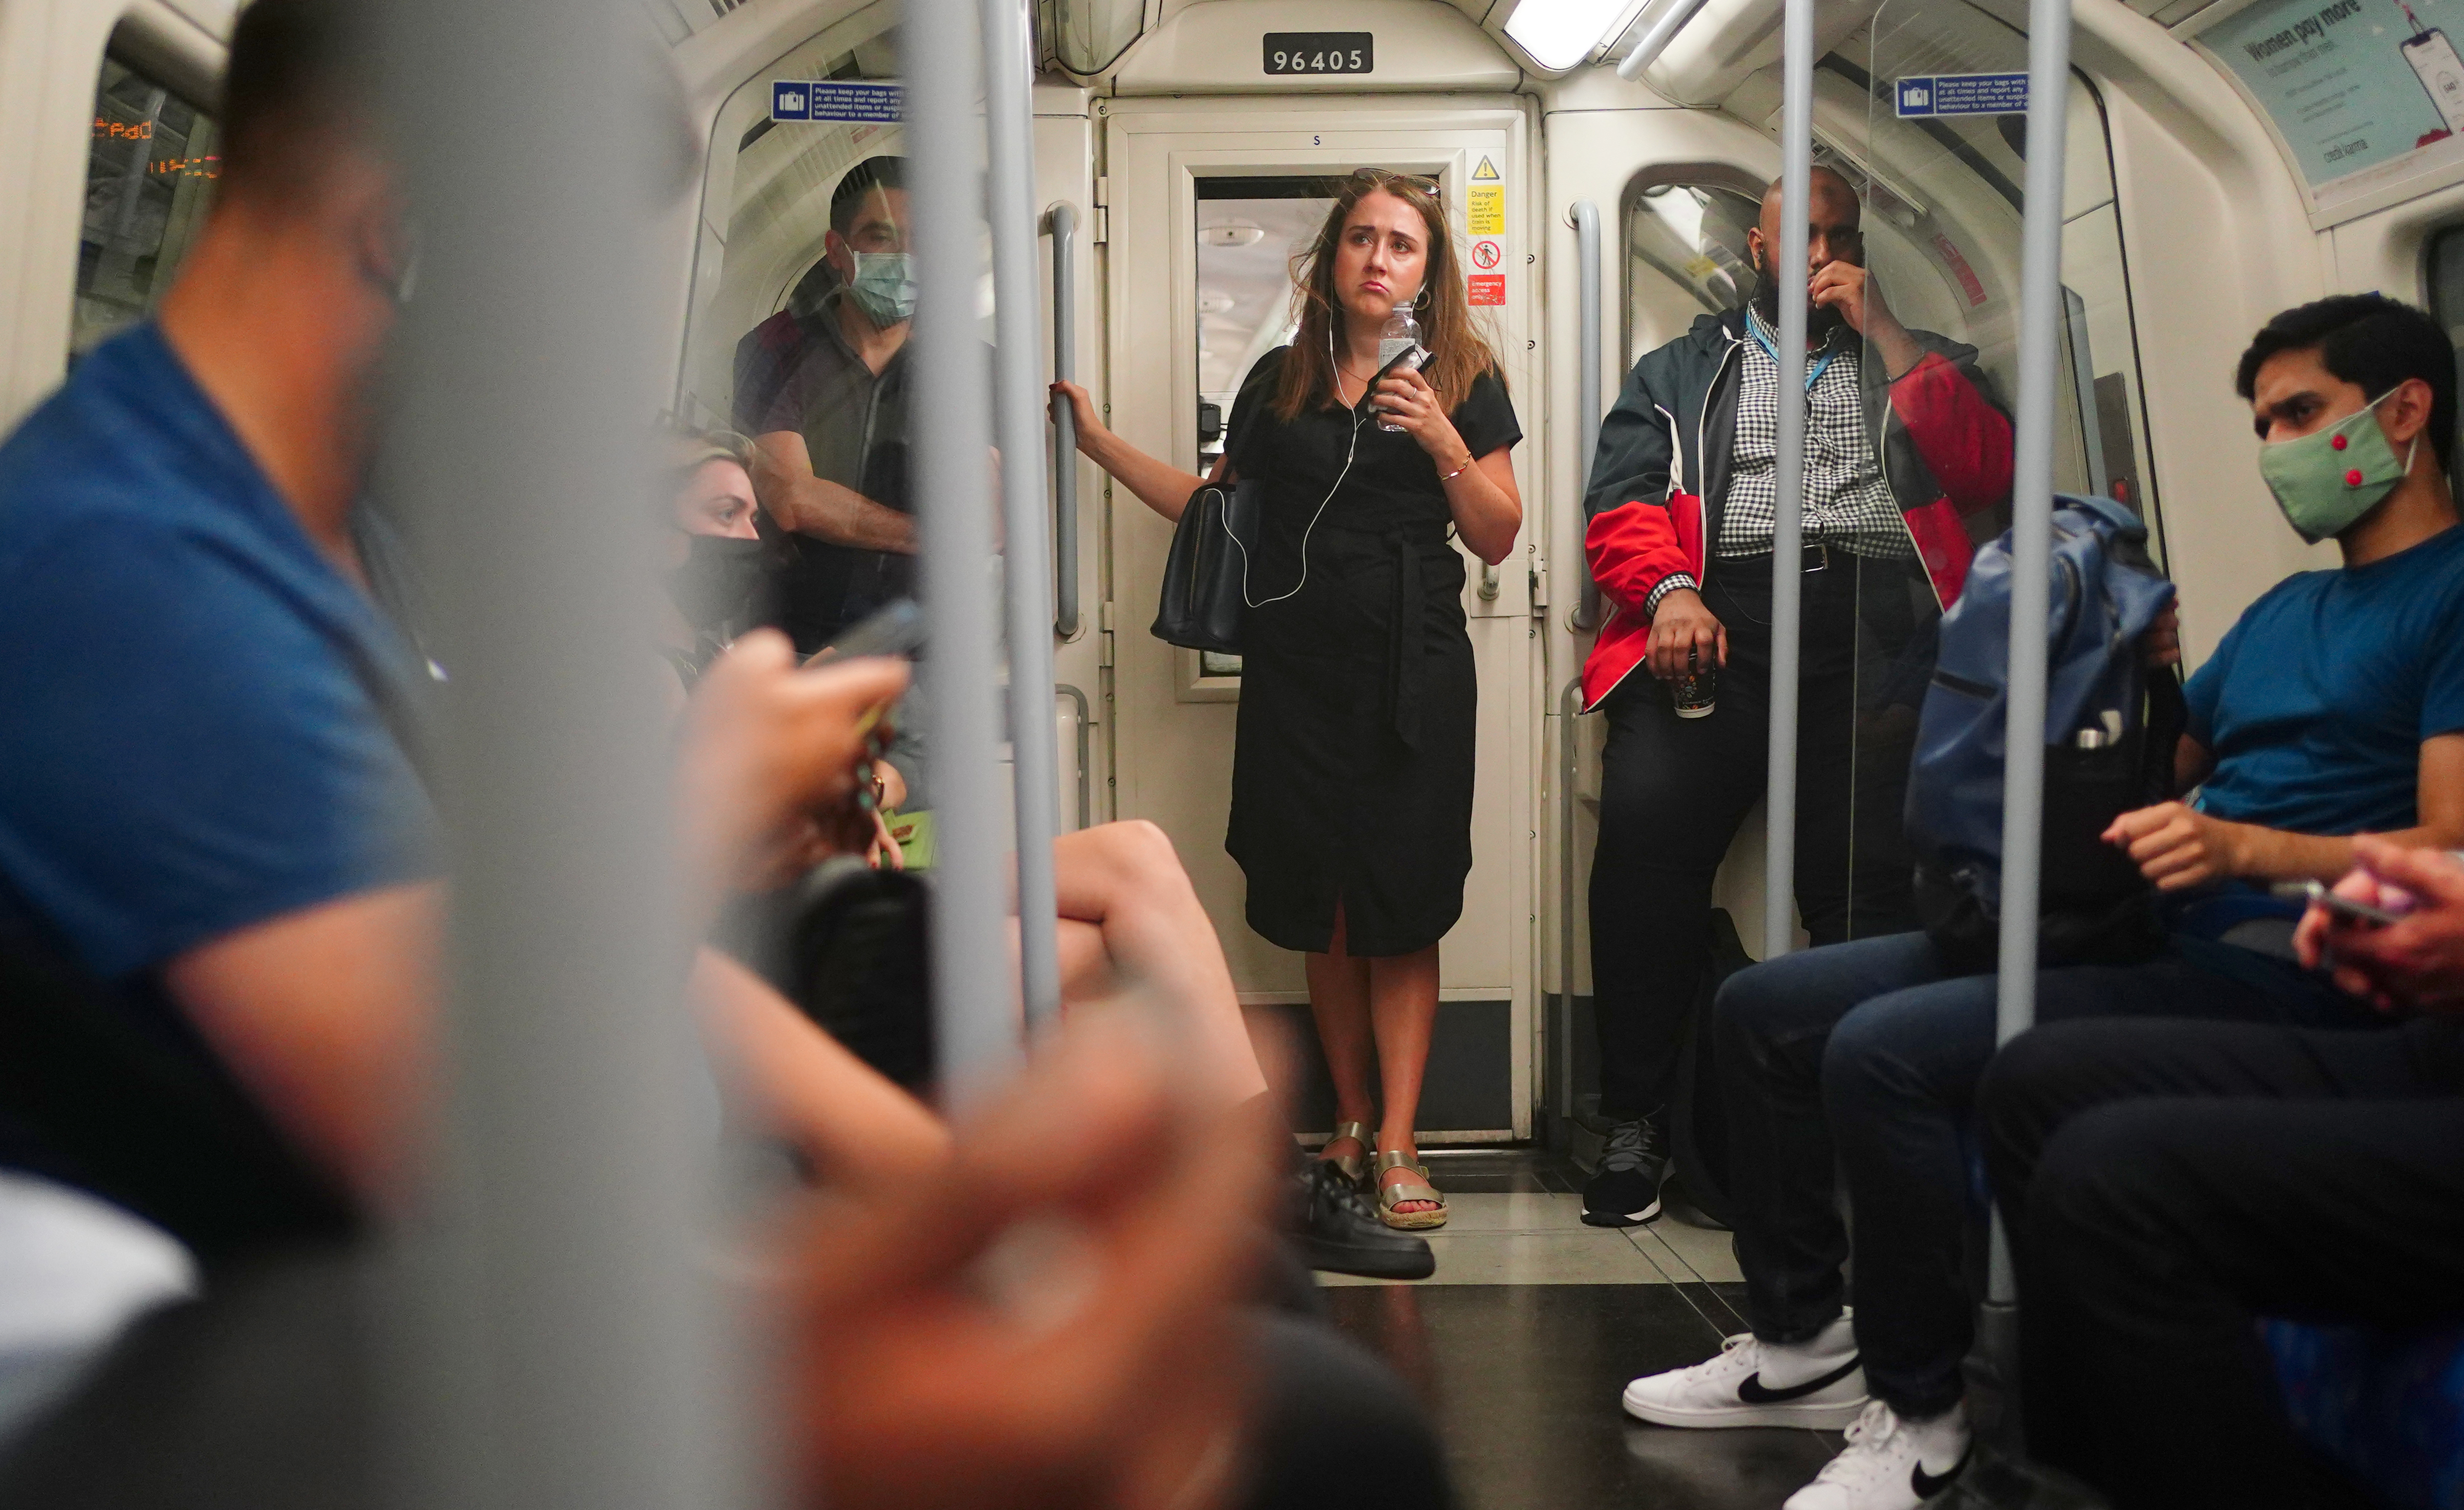 <p>Commuters, some not wearing facemasks, on a Jubilee Line train at 0856 in London after the final legal Coronavirus restrictions were lifted in England. Picture date: Monday July 19, 2021.</p>